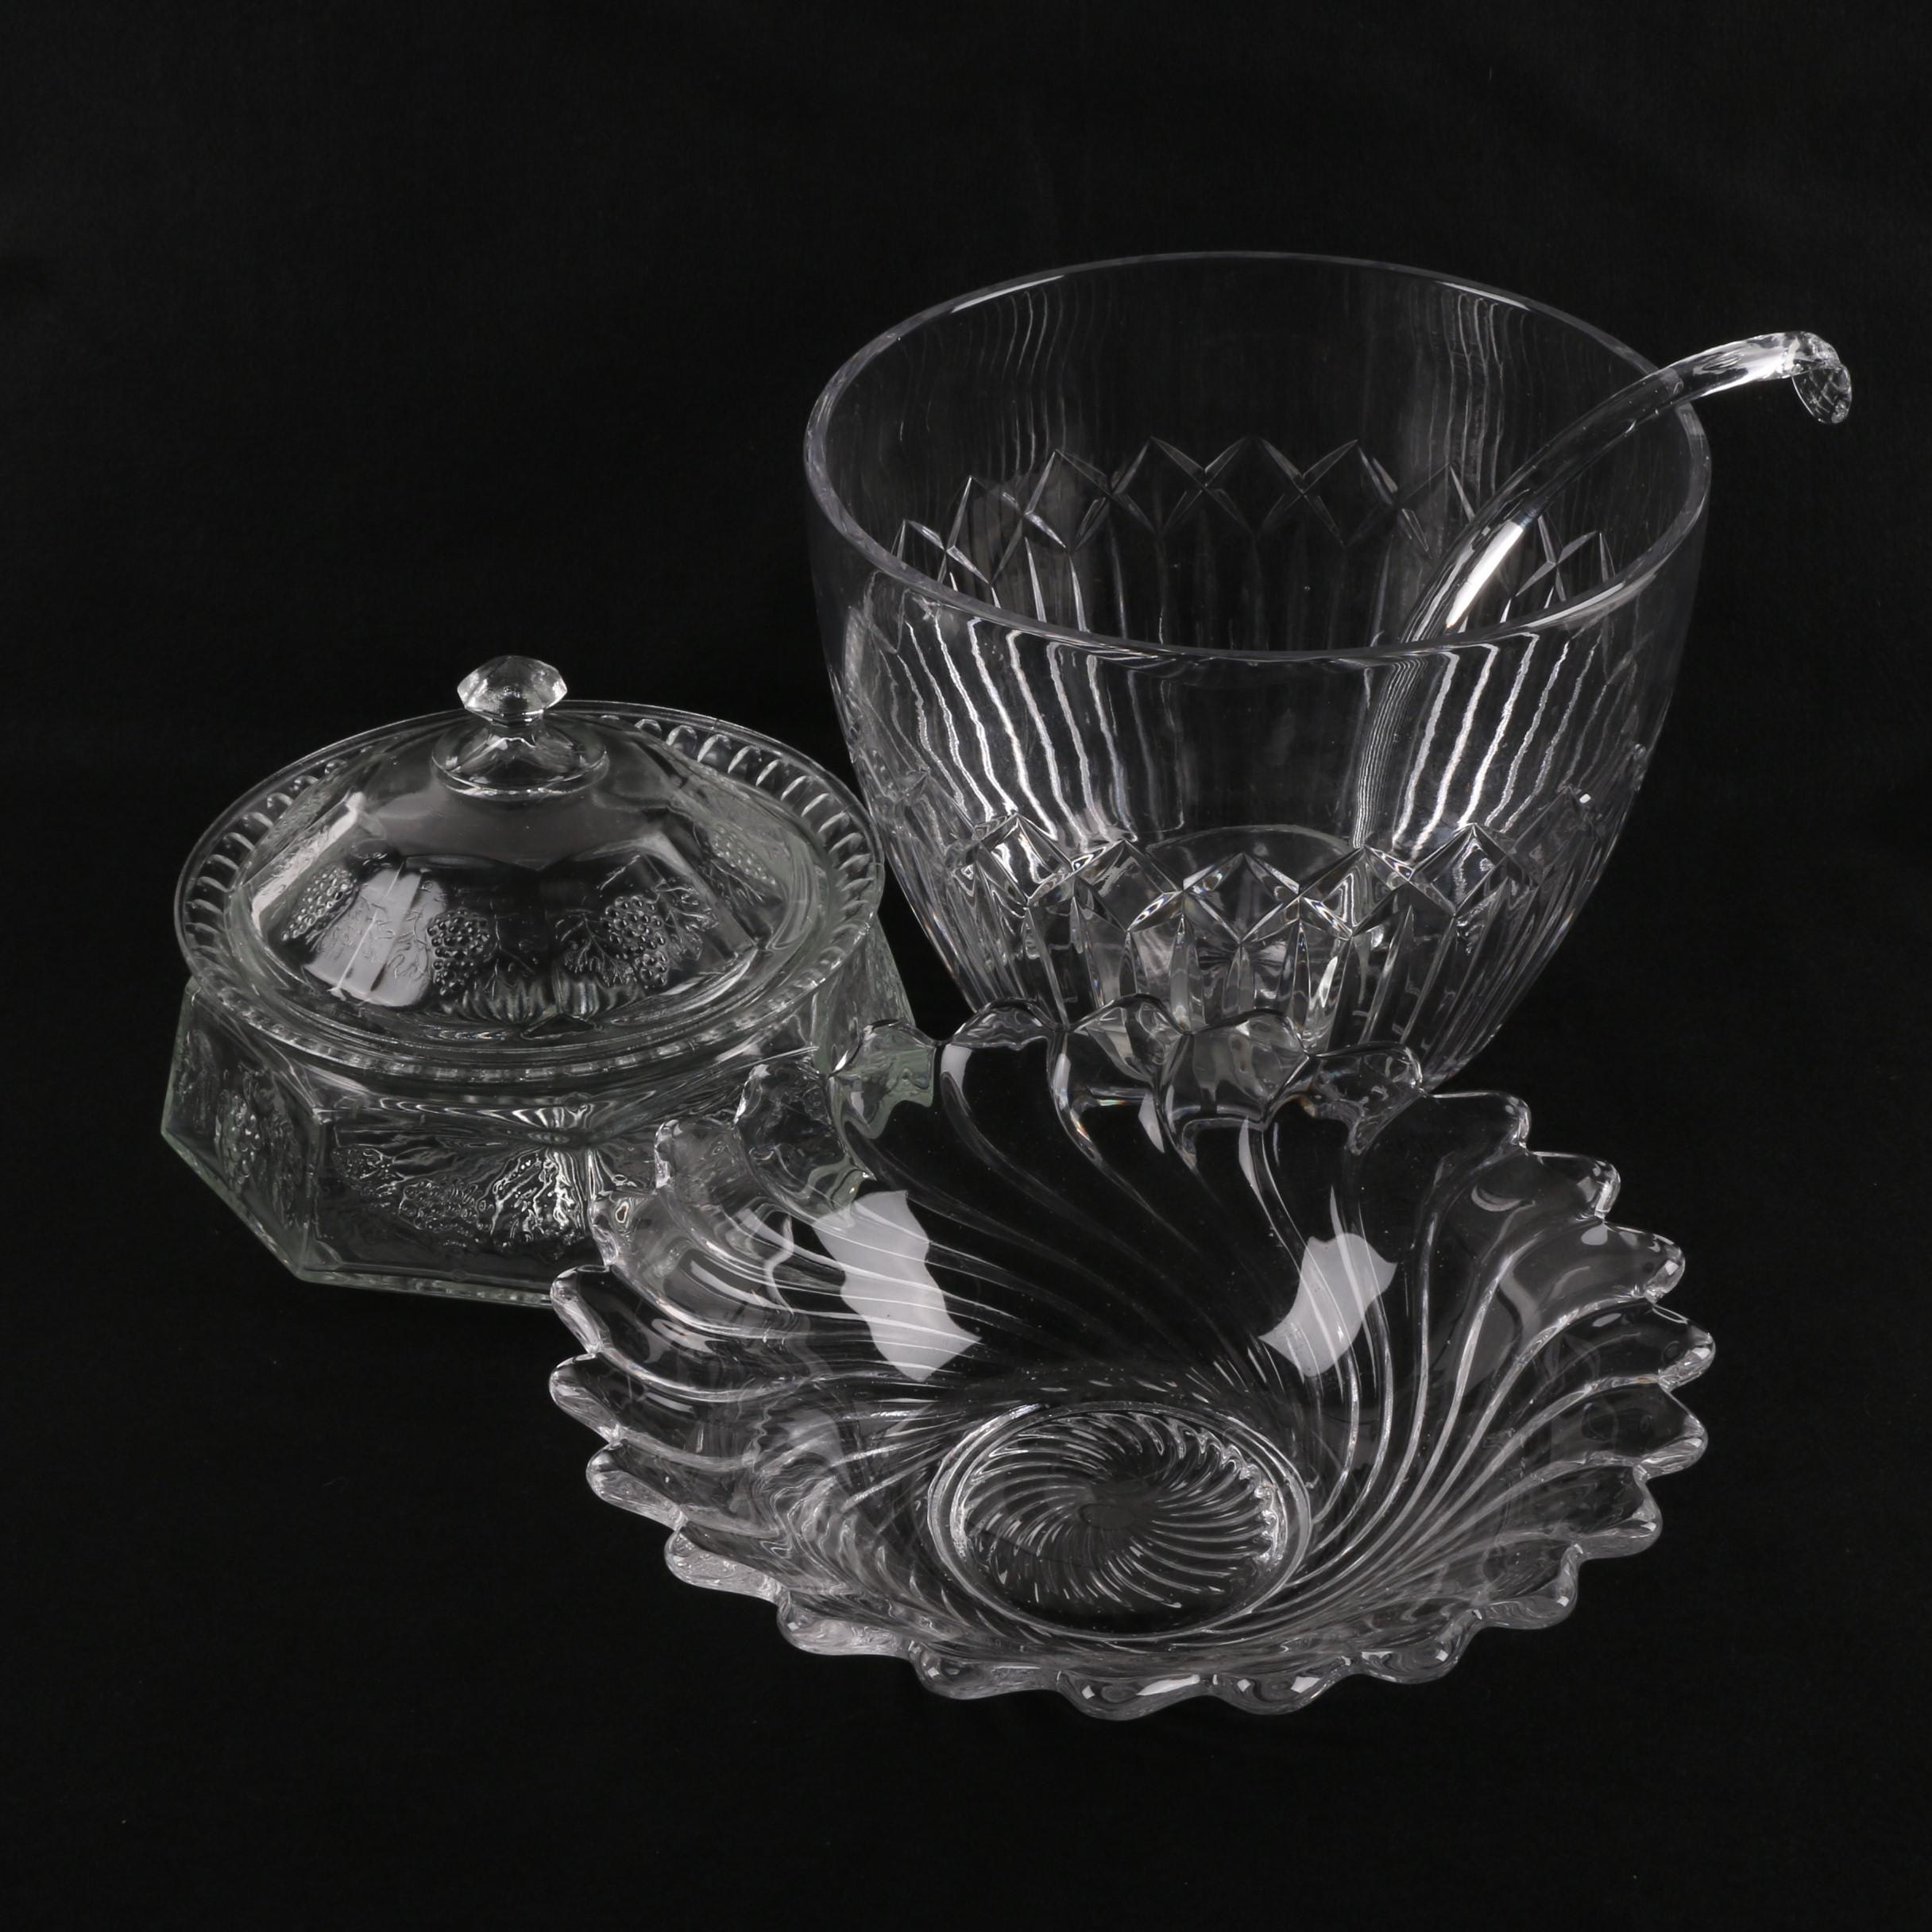 Crystal Punch Bowl and Glass Serveware